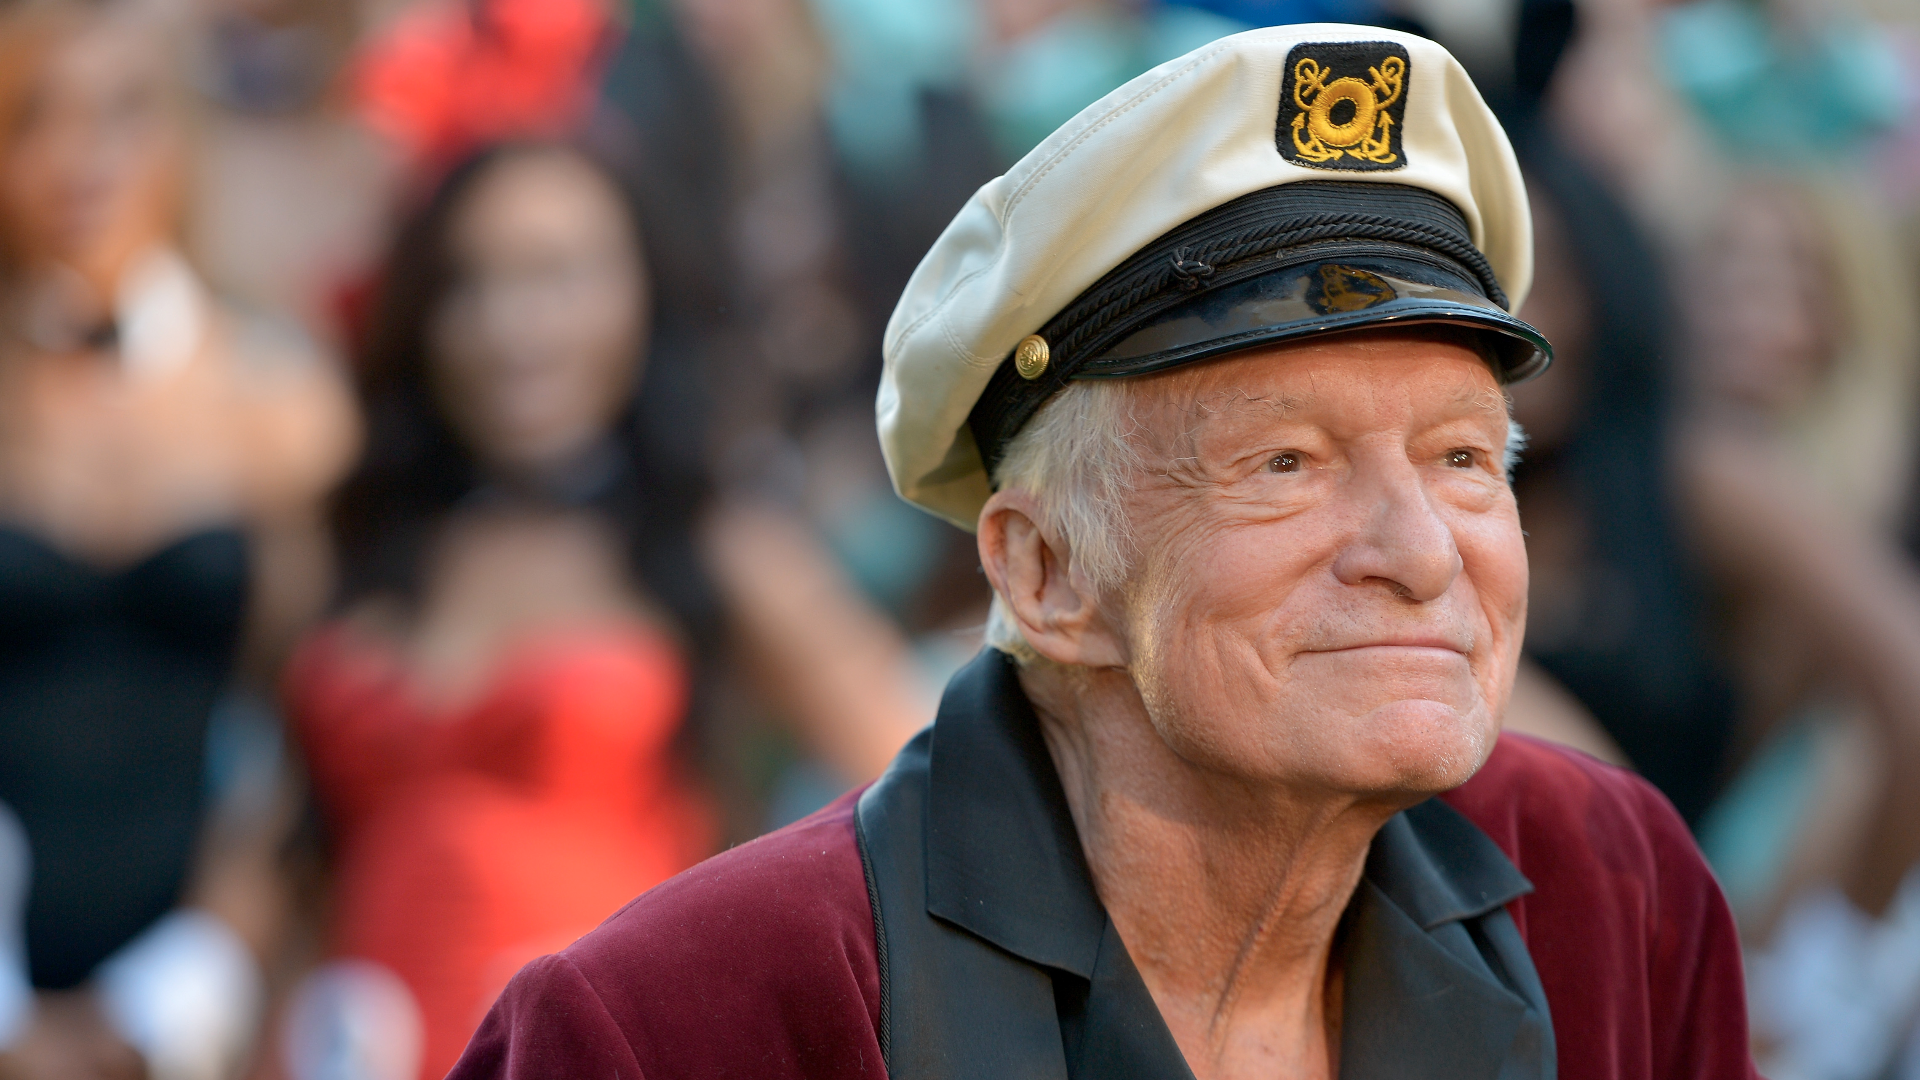 Hugh Hefner, visionary editor who founded Playboy magazine, dies at 91